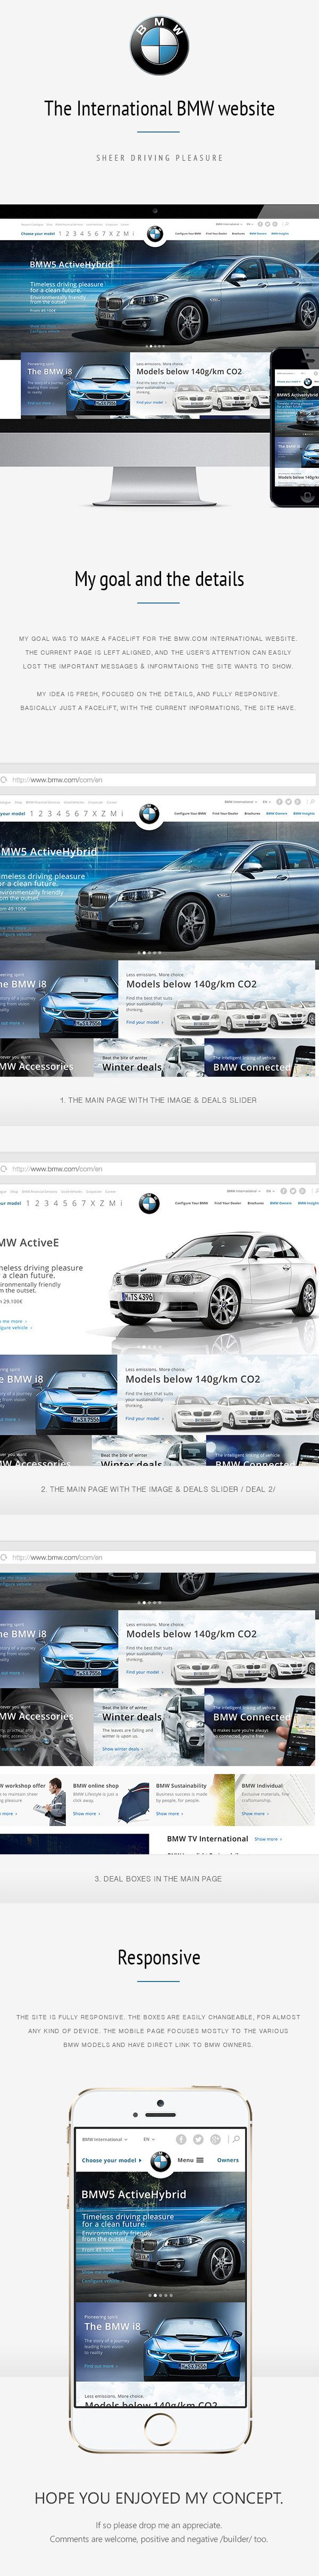 Bmw website facelift concept almost every elements remain the same just gave some life